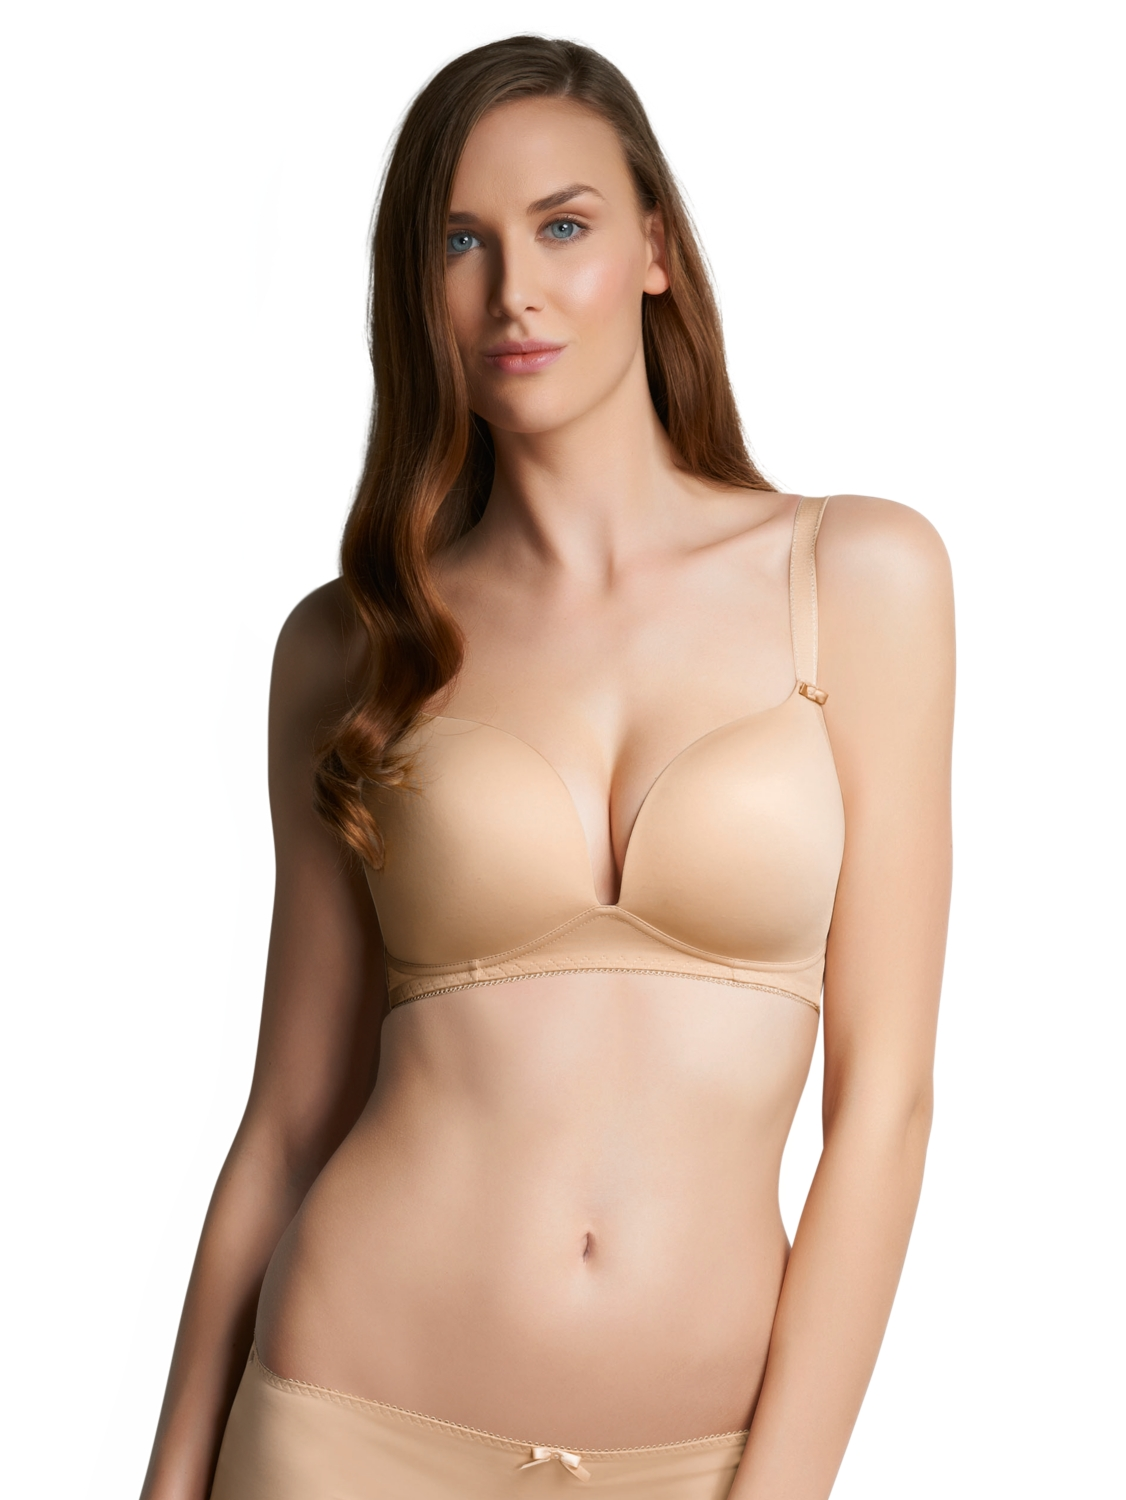 4af841c775532 Freya Freya Deco Moulded Soft Cup Bra Nude in Natural - Lyst